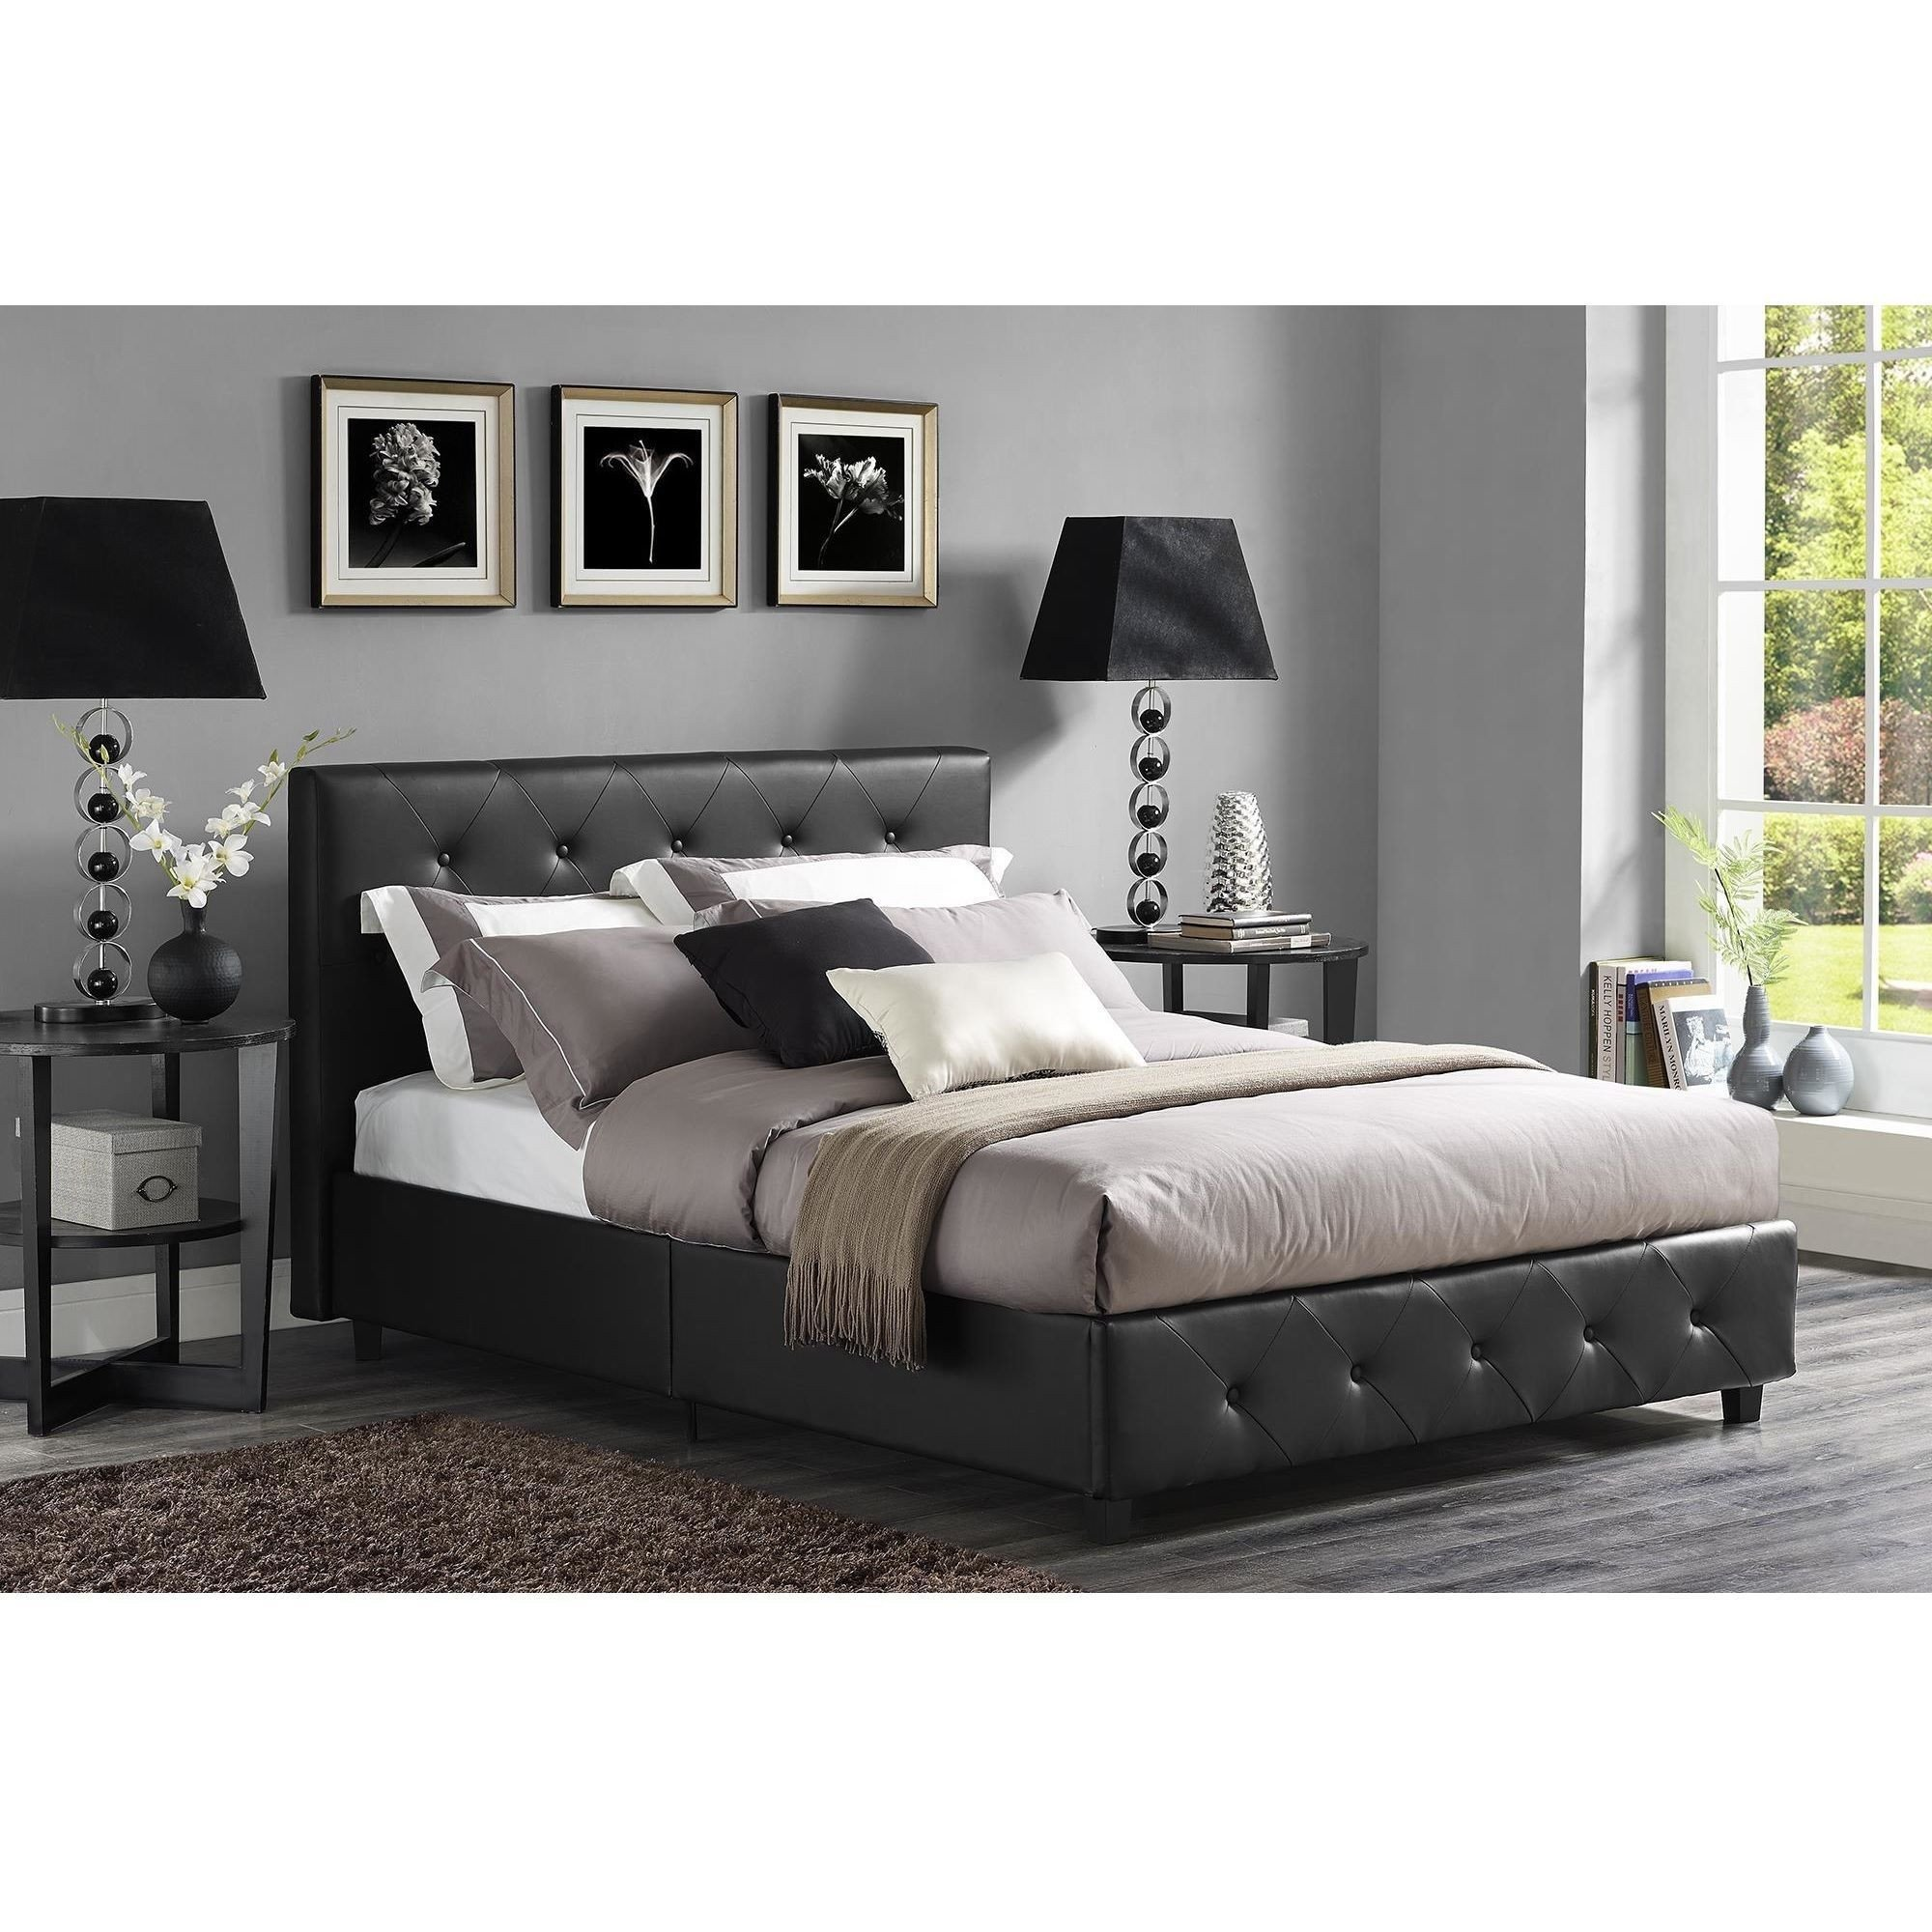 Black Leather Bedroom Set Luxury Wicker Park Claremont Black Faux Leather Upholstered Bed